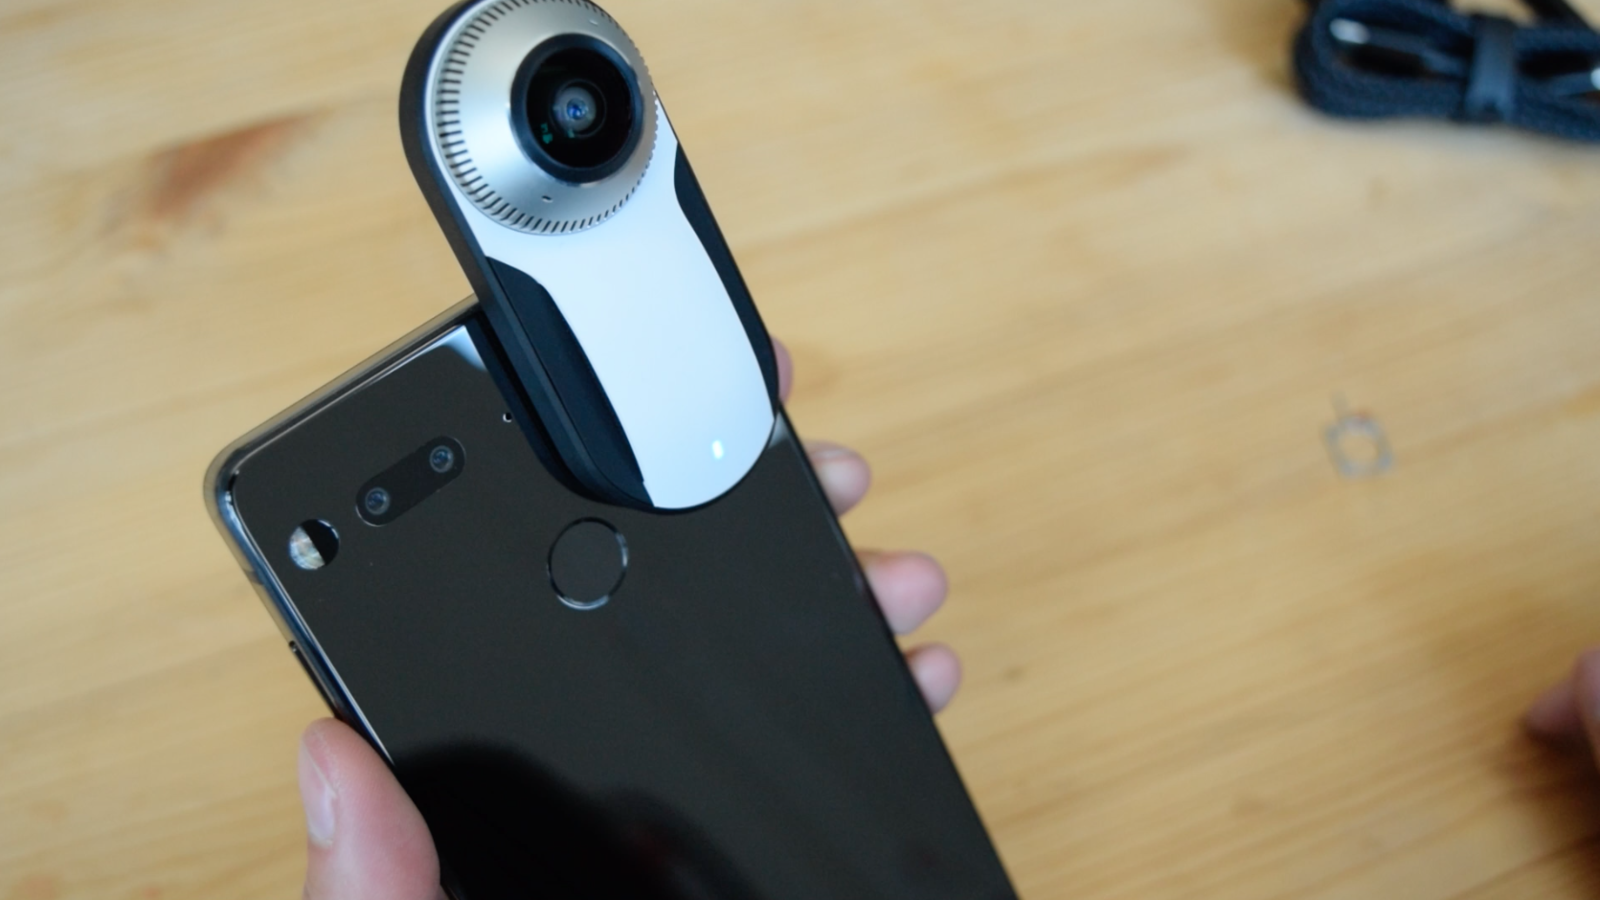 "The camera, which is sold separately for $200 (or $50 if you buy it with the phone), snaps to the phone through magnetized, metal prongs. According to Essential, it's the ""world's smallest 360º personal camera.""After you connect the camera, it immediately launches 360º mode in the camera app. I tried a not-yet-finalized version of the 360º cam and app, so sometimes the app launched automatically, sometimes it didn't. The camera can capture 2k or 4k photos or video and doesn't have flash, so you're limited to day photography. The accessory has two 180º cameras, one on the front and one on the back, and the two images are stitched together automatically on the phone itself. It puts in a lot of work for small device. You can hear the fan inside of the 360º camera working, and the phone runs warm while processing 4k images.When it officially launches, Essential's camera app will also be able to support 360º livestreaming to Facebook, YouTube, and Twitter."